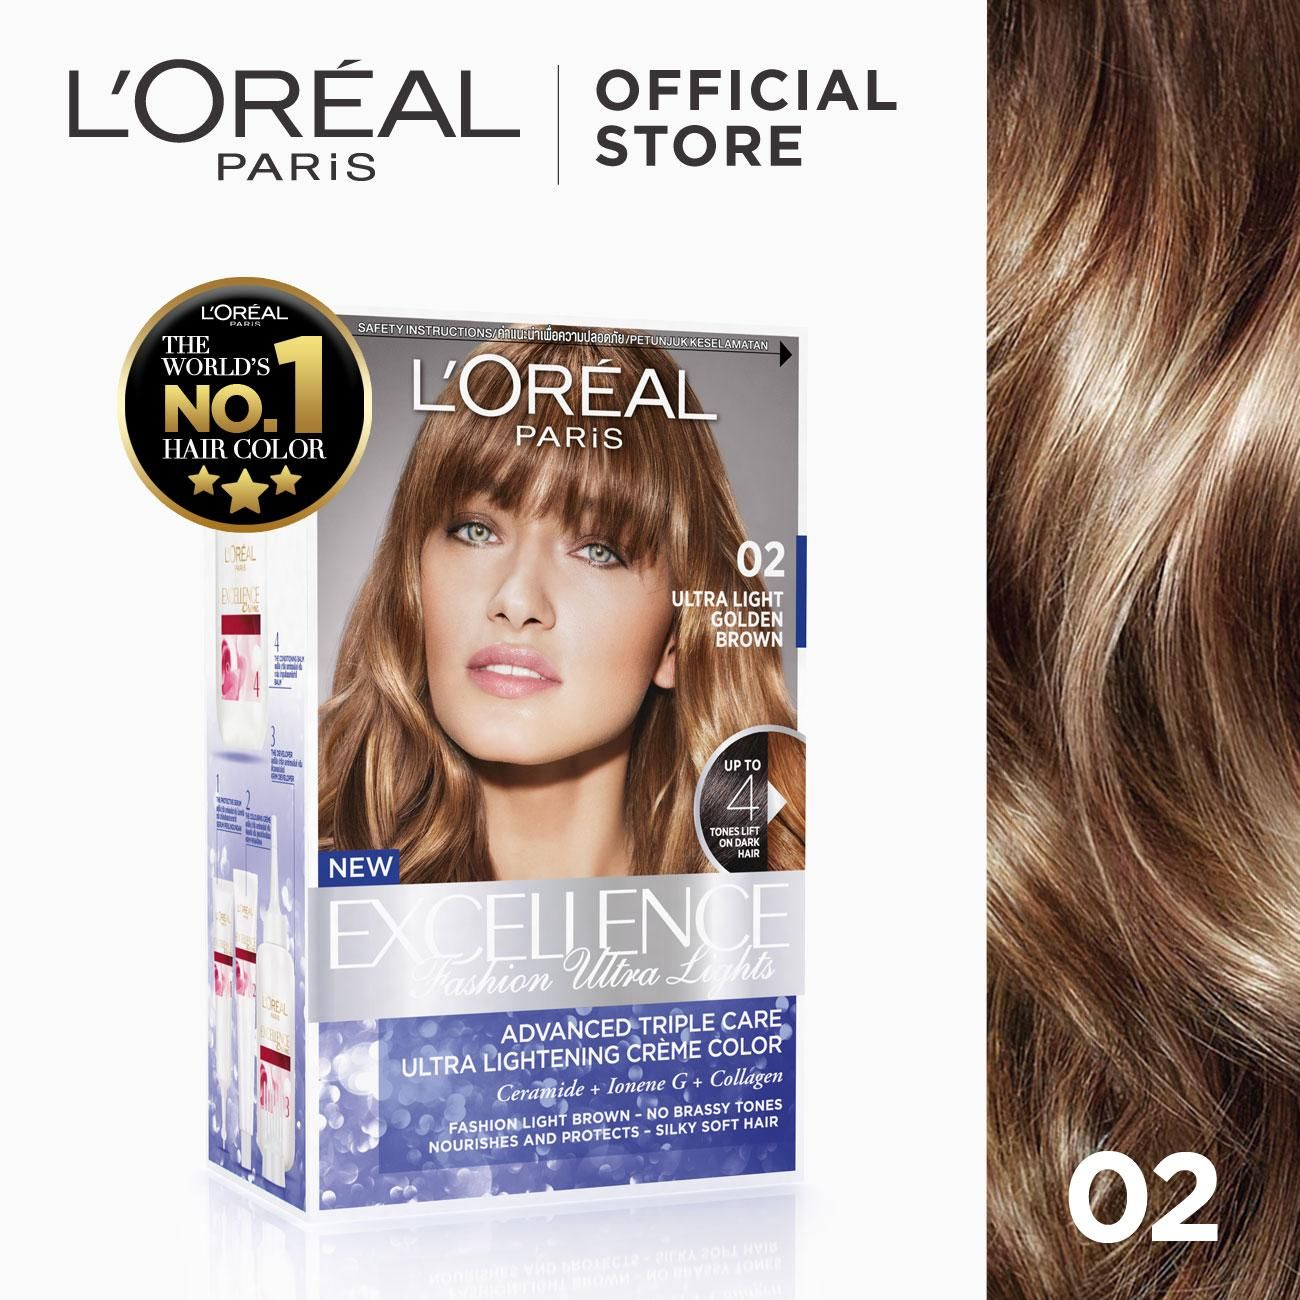 L Oreal Paris Excellence Fashion Ultra Lights Hair Color Golden Brown 02 World S No 1 In 2020 Light Hair Color Loreal Paris Hair Color